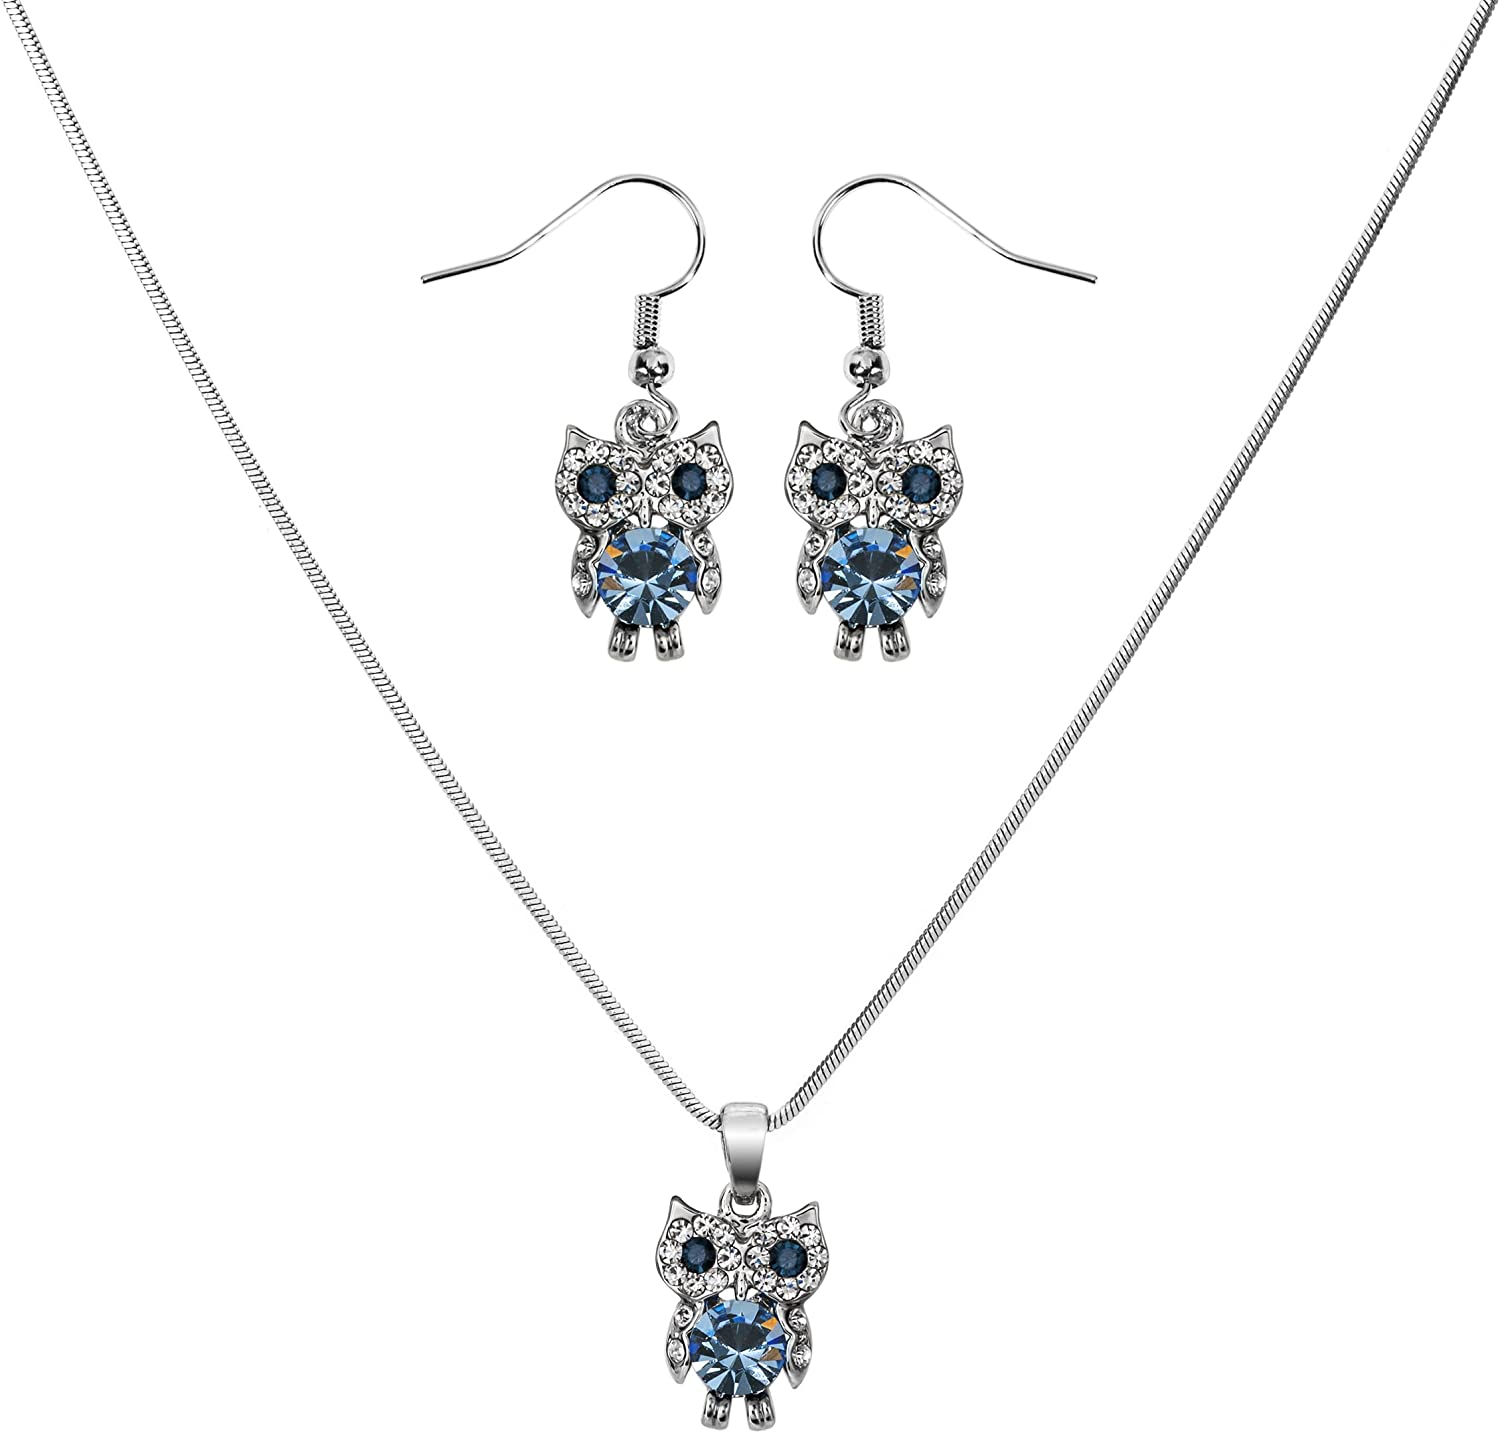 Lova Jewelry Owl Necklace and Earrings Set